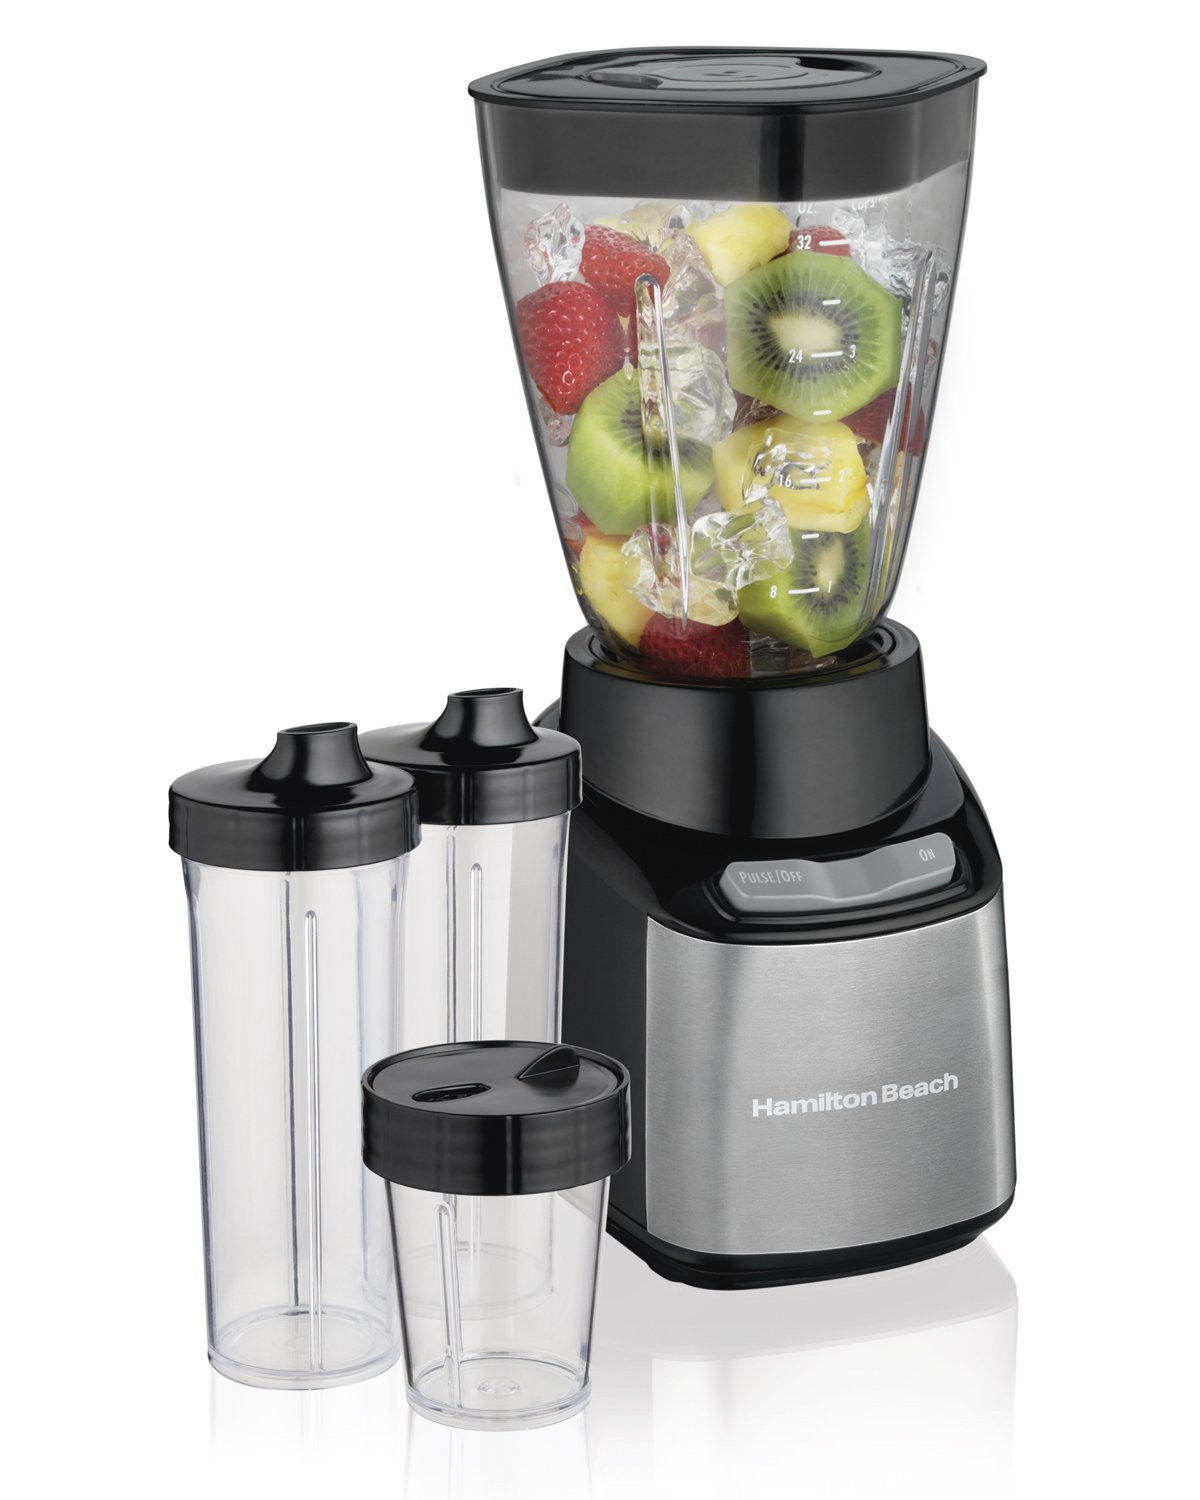 Blender For Smoothies  Best Blenders Under 50$ Smoothie Blender Guide